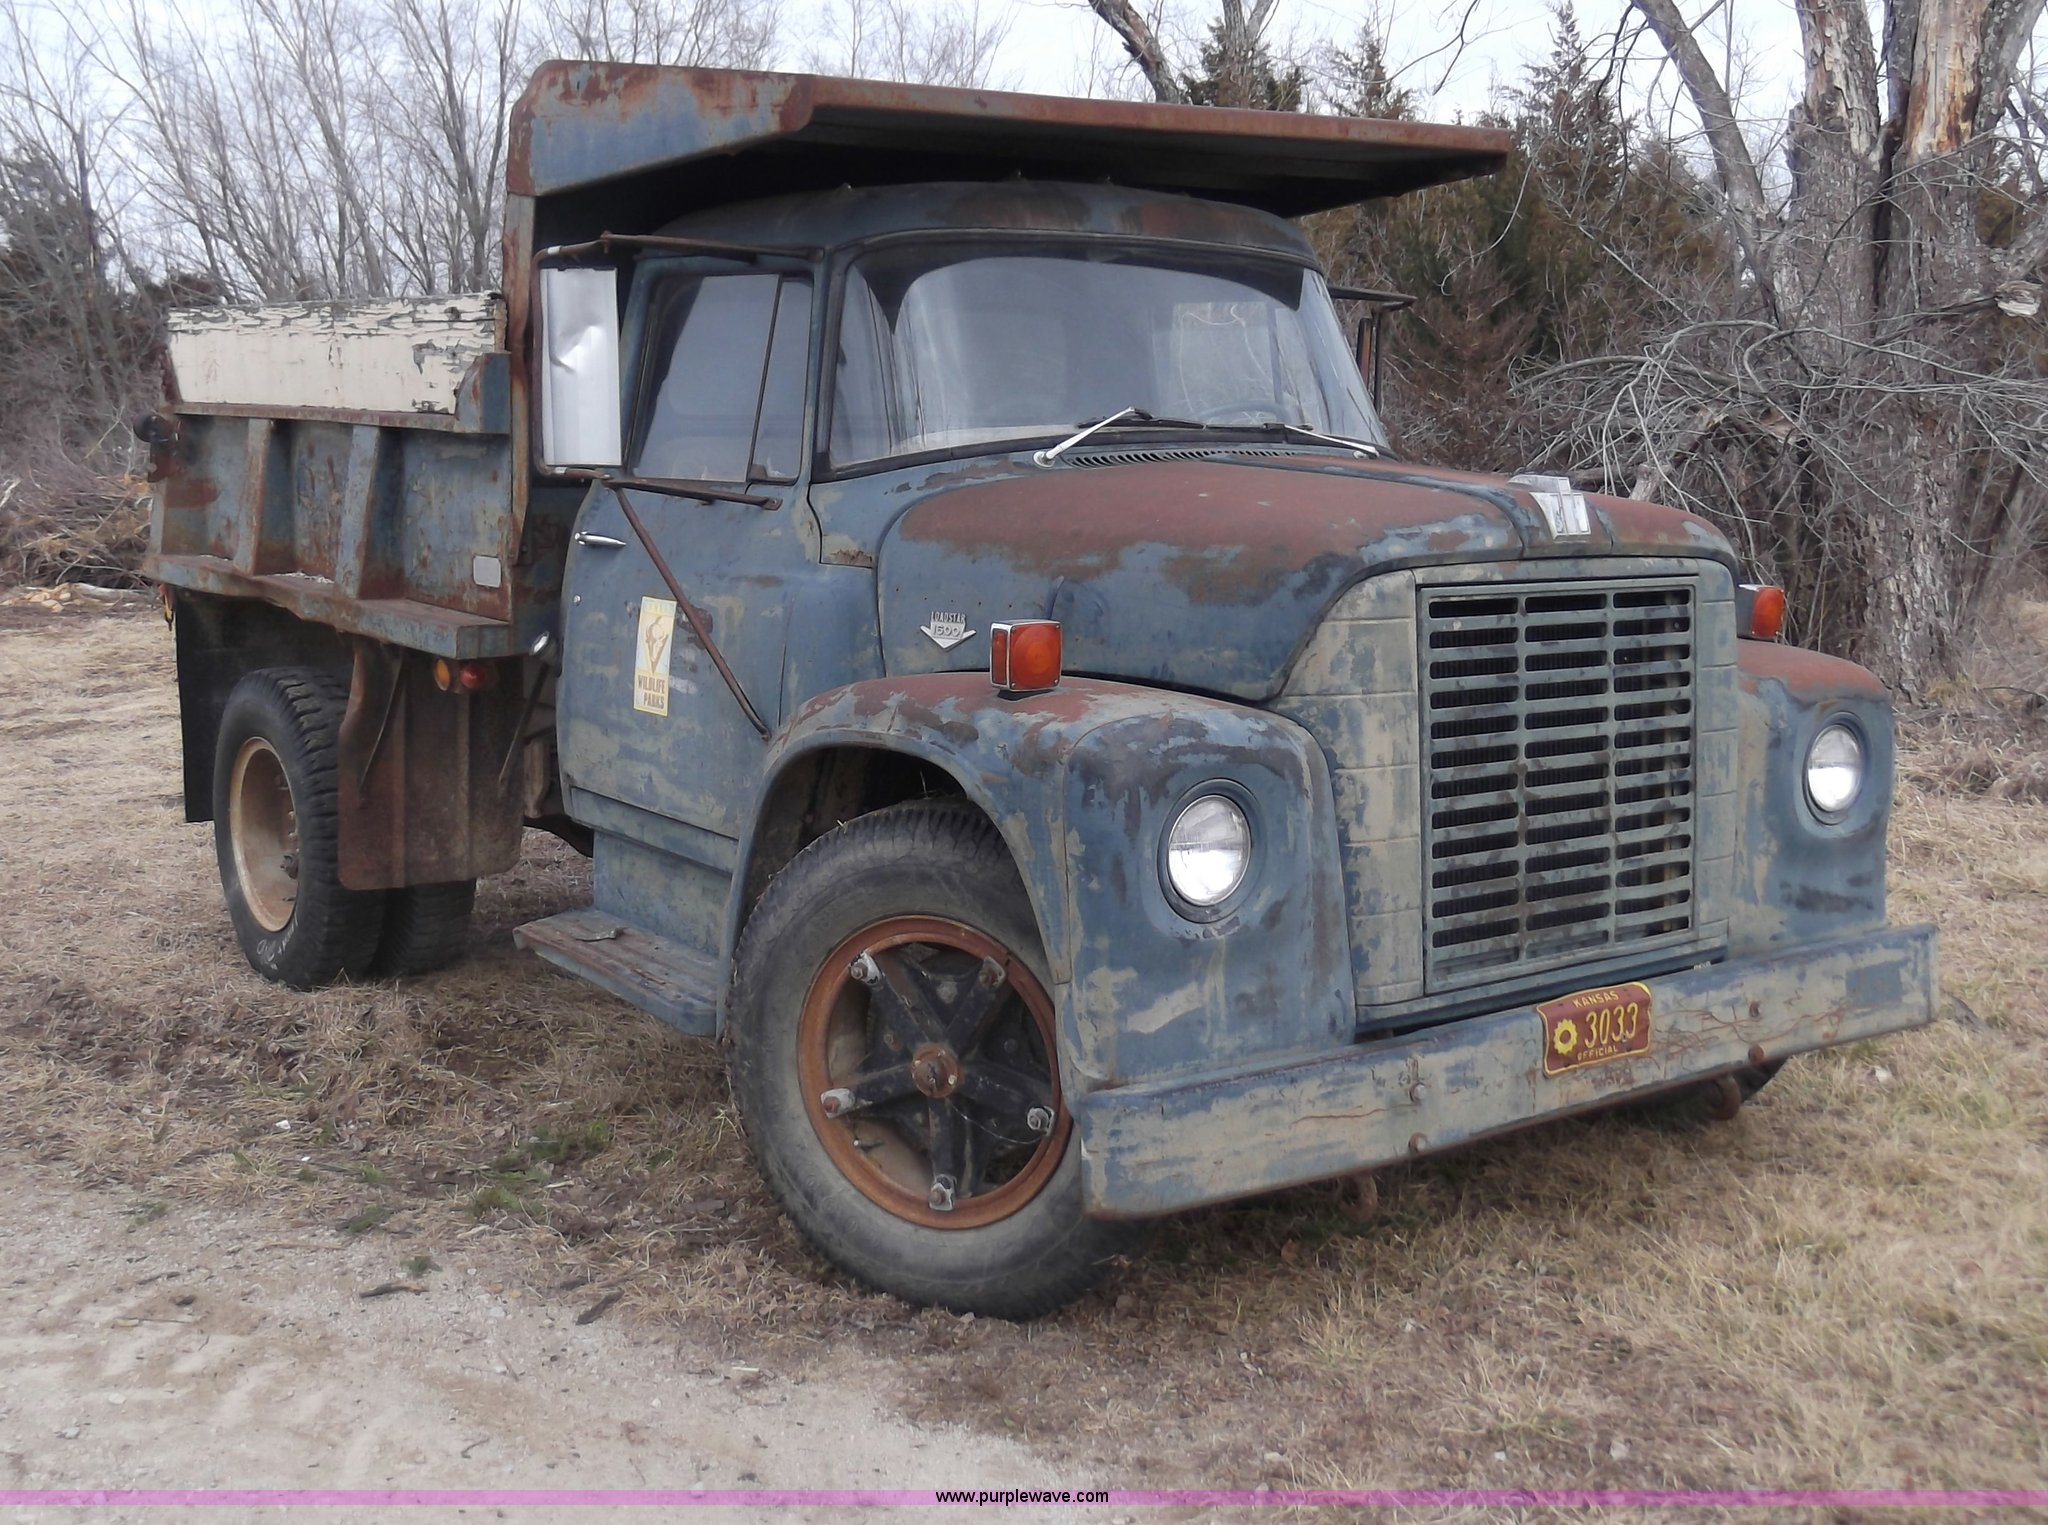 1971 International Loadstar 1600 Dump Truck Item C1762 S Ford Full Size In New Window